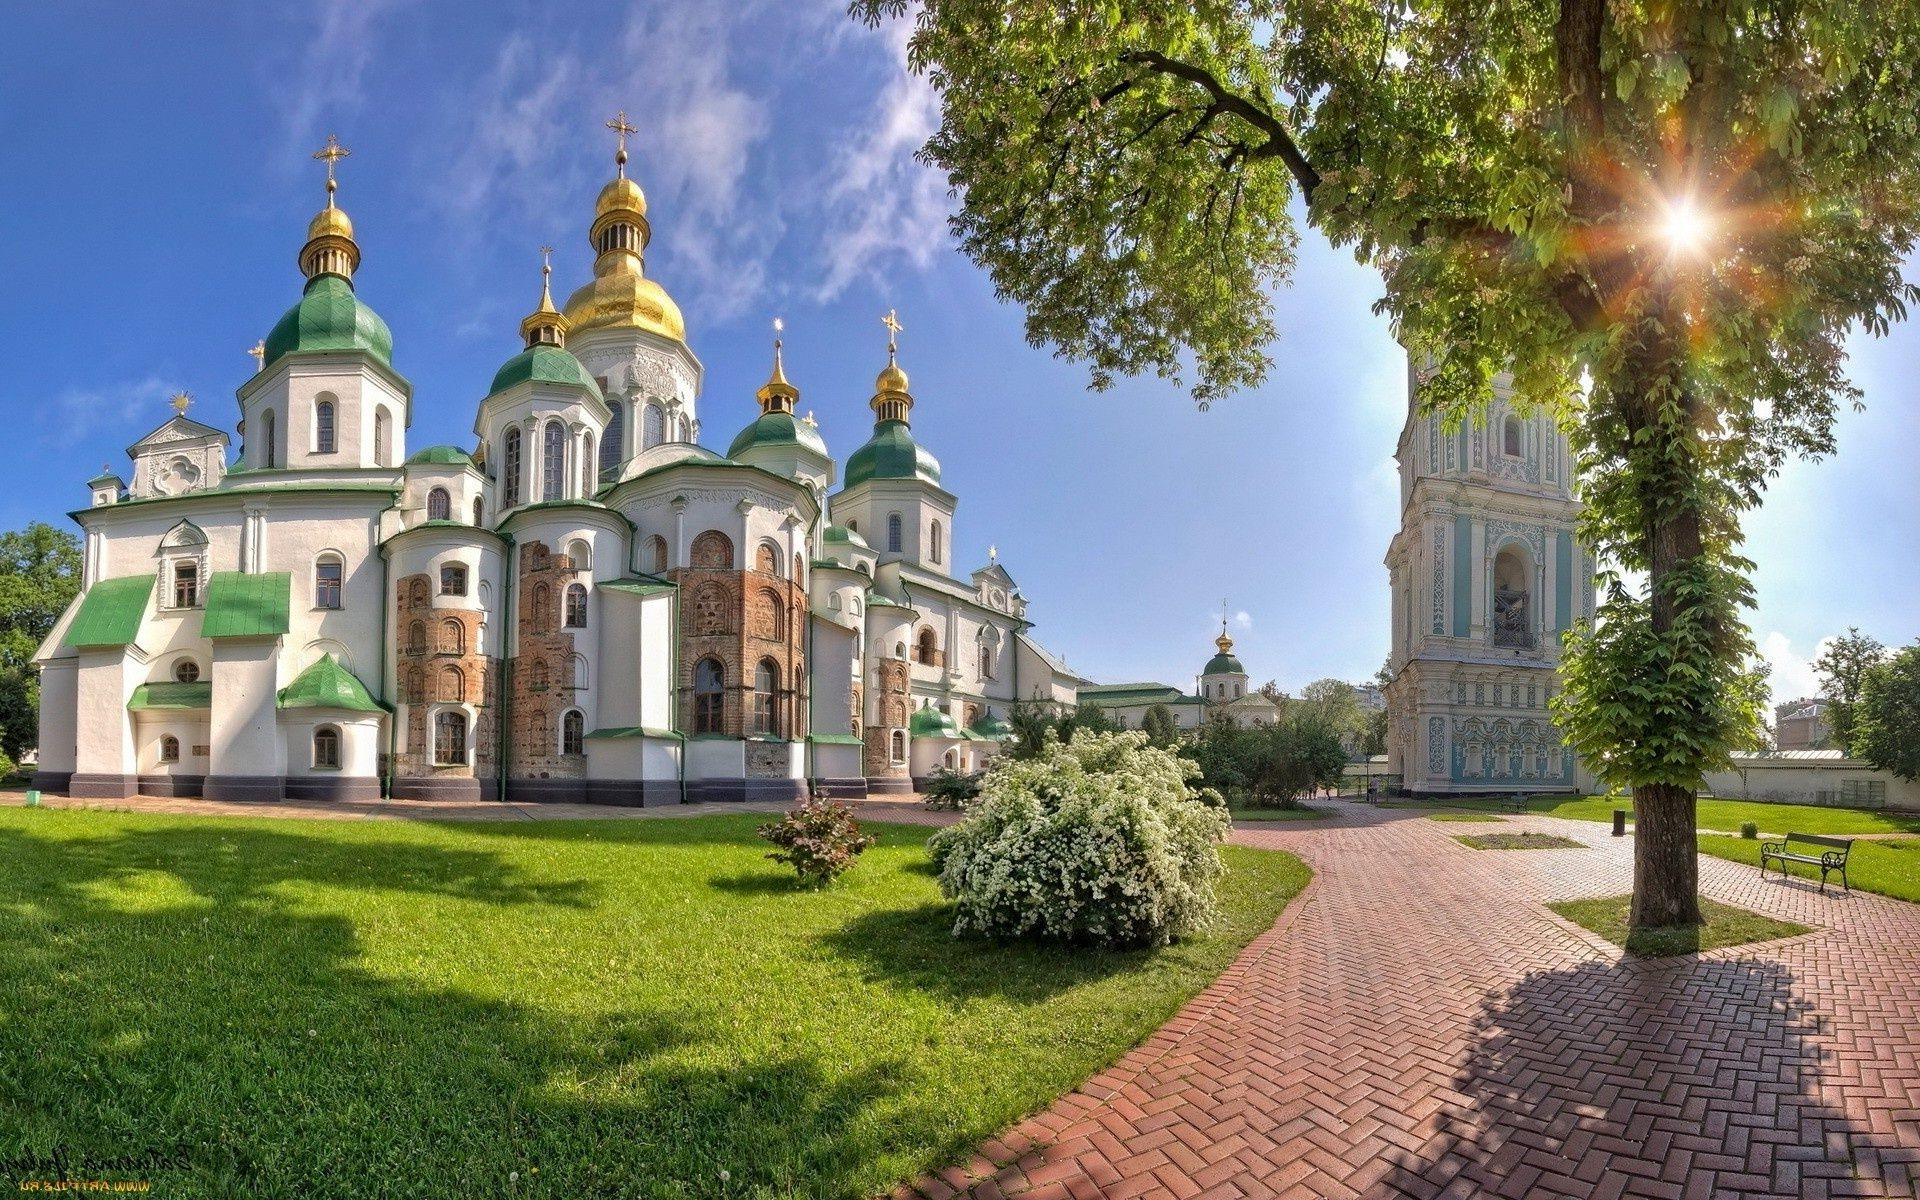 ancient architecture architecture building church travel sky old city castle religion dome culture tourism exterior famous orthodox cathedral tower landmark historic sight